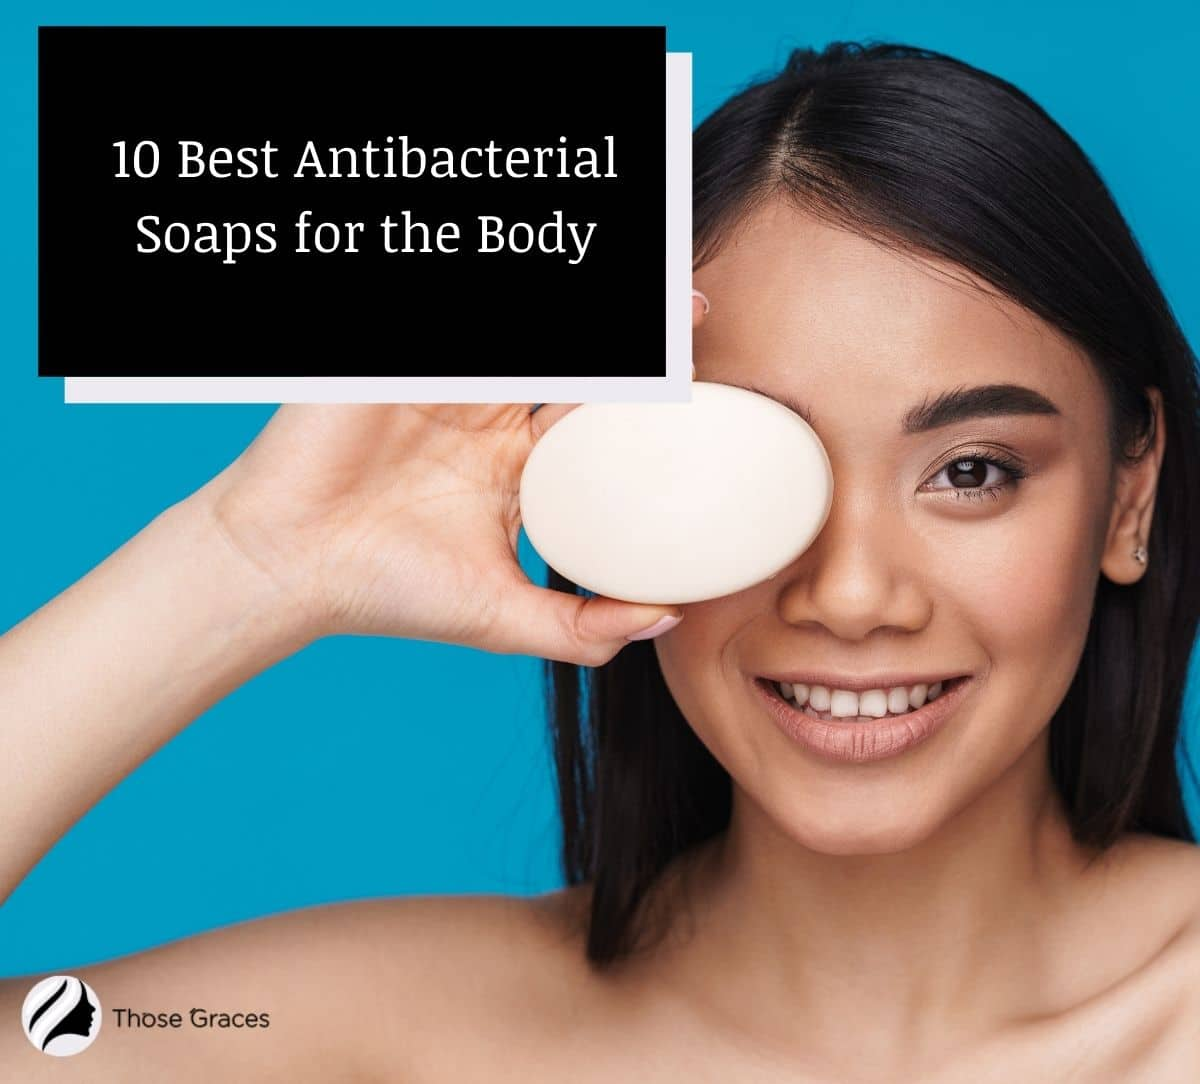 lady holding an antibacterial soap for body